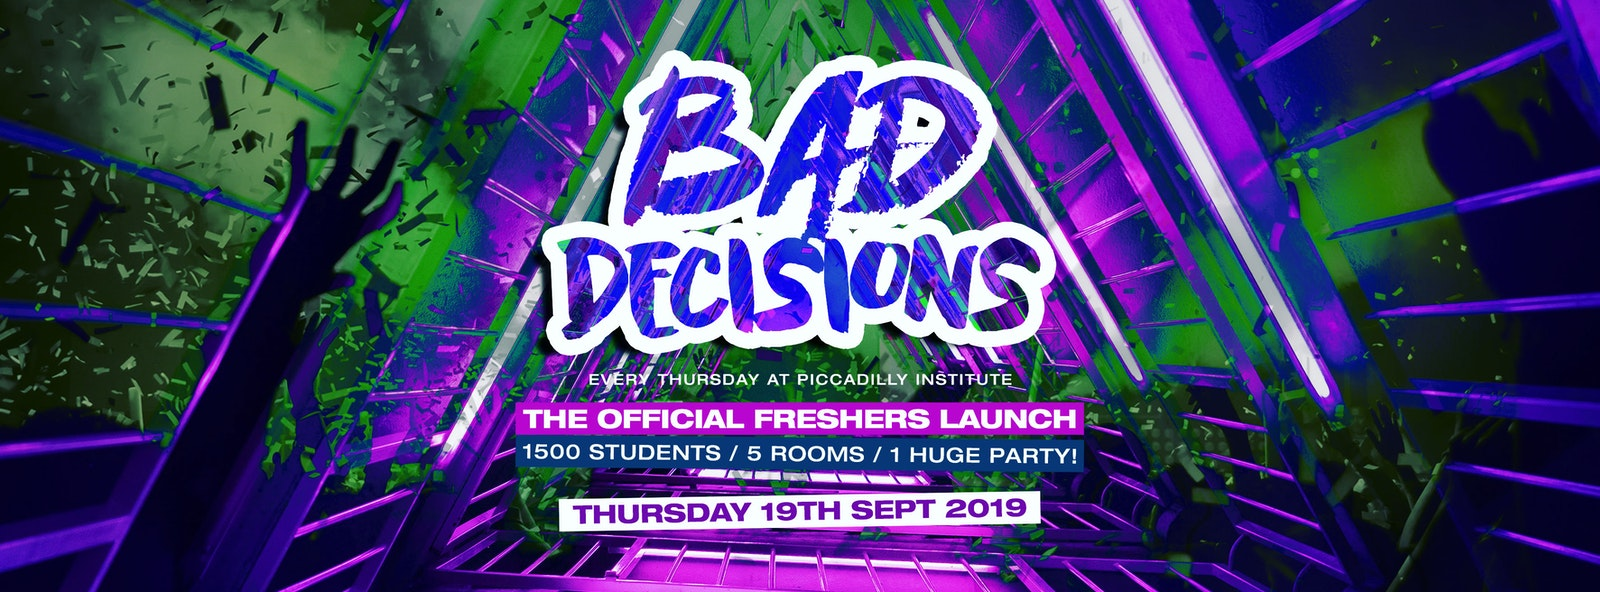 BAD DECISIONS FRESHERS LAUNCH PART 1 @ PICCADILLY INSTITUTE LONDON